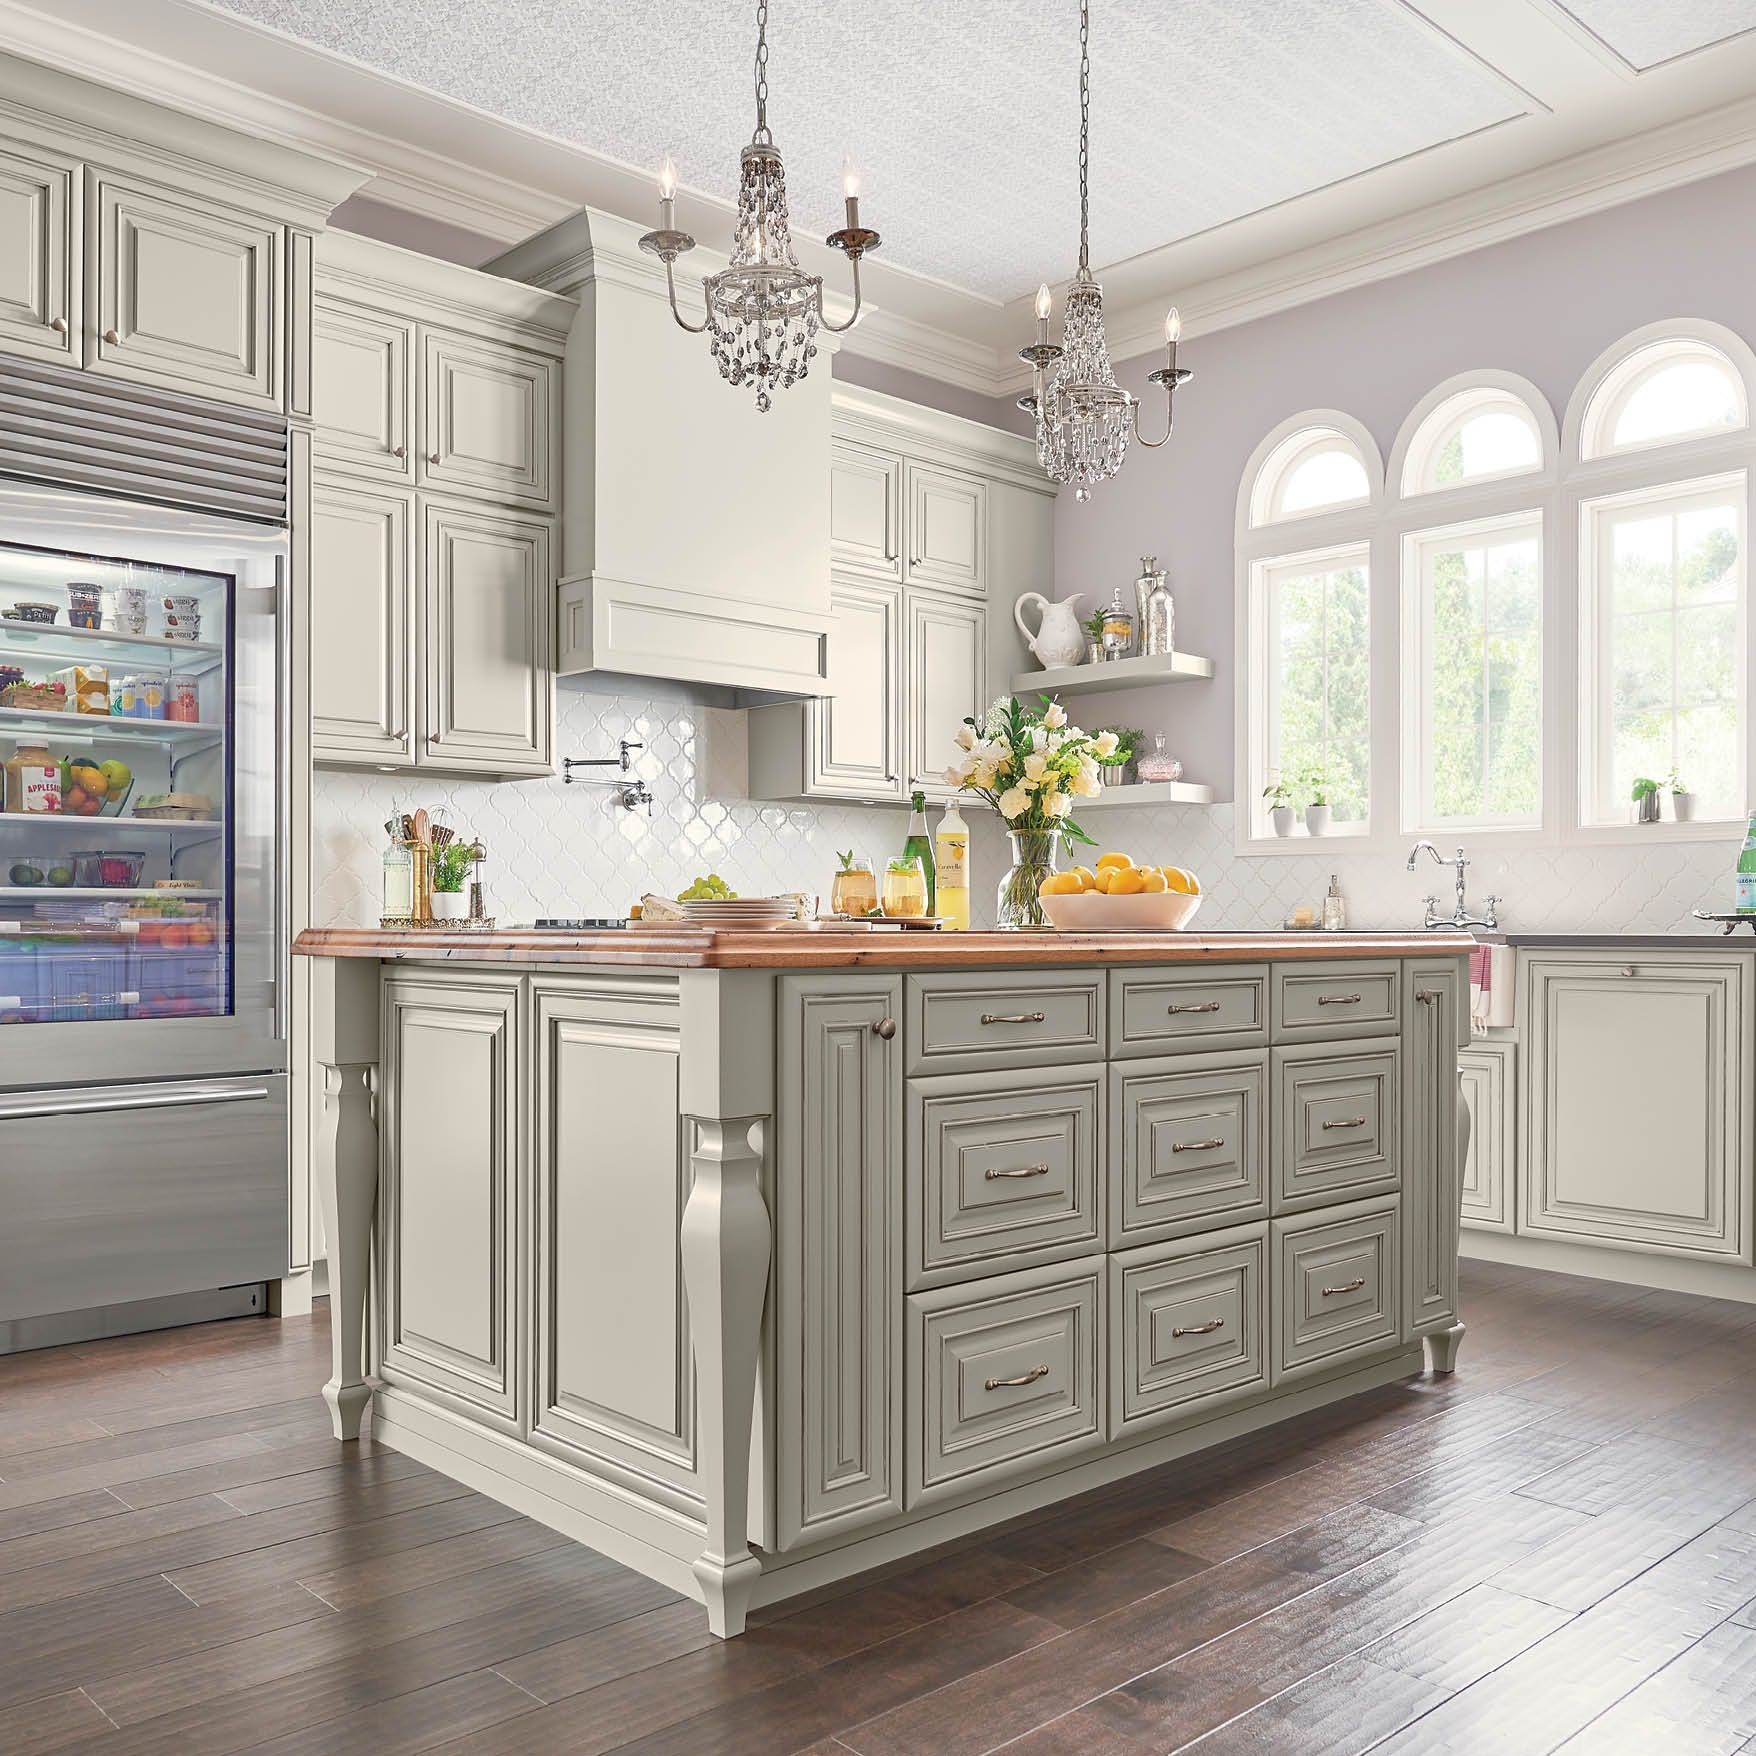 There Is So Much To Love About This Island 740 Painted Ember Glaze Chantilly Legs And Drawers Glazed Kitchen Cabinets Kitchen Cabinets Showroom Kitchen Design